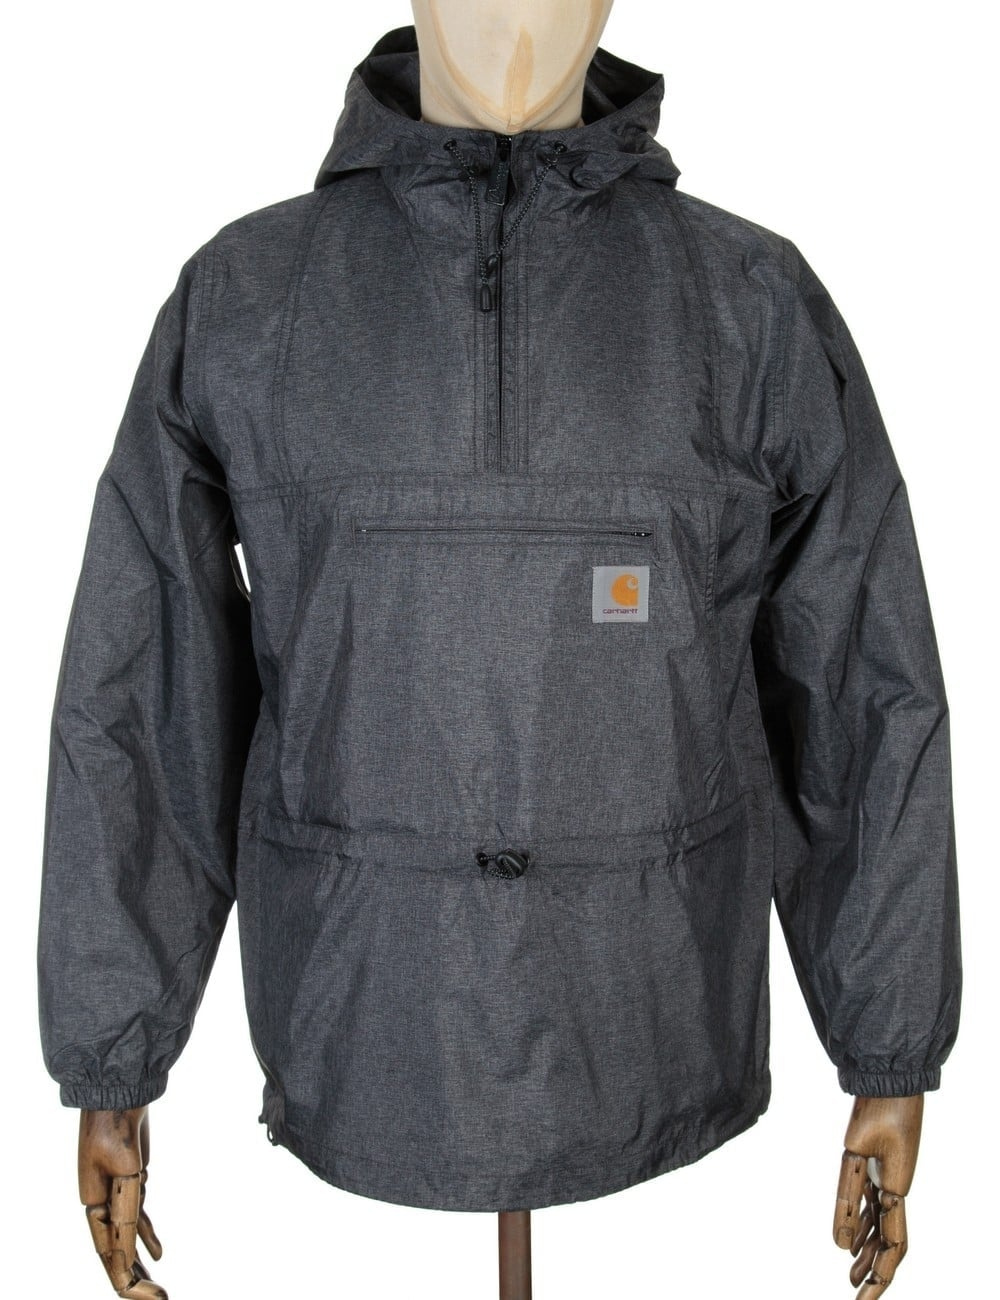 carhartt spinner pullover jacket black clothing from fat buddha store uk. Black Bedroom Furniture Sets. Home Design Ideas